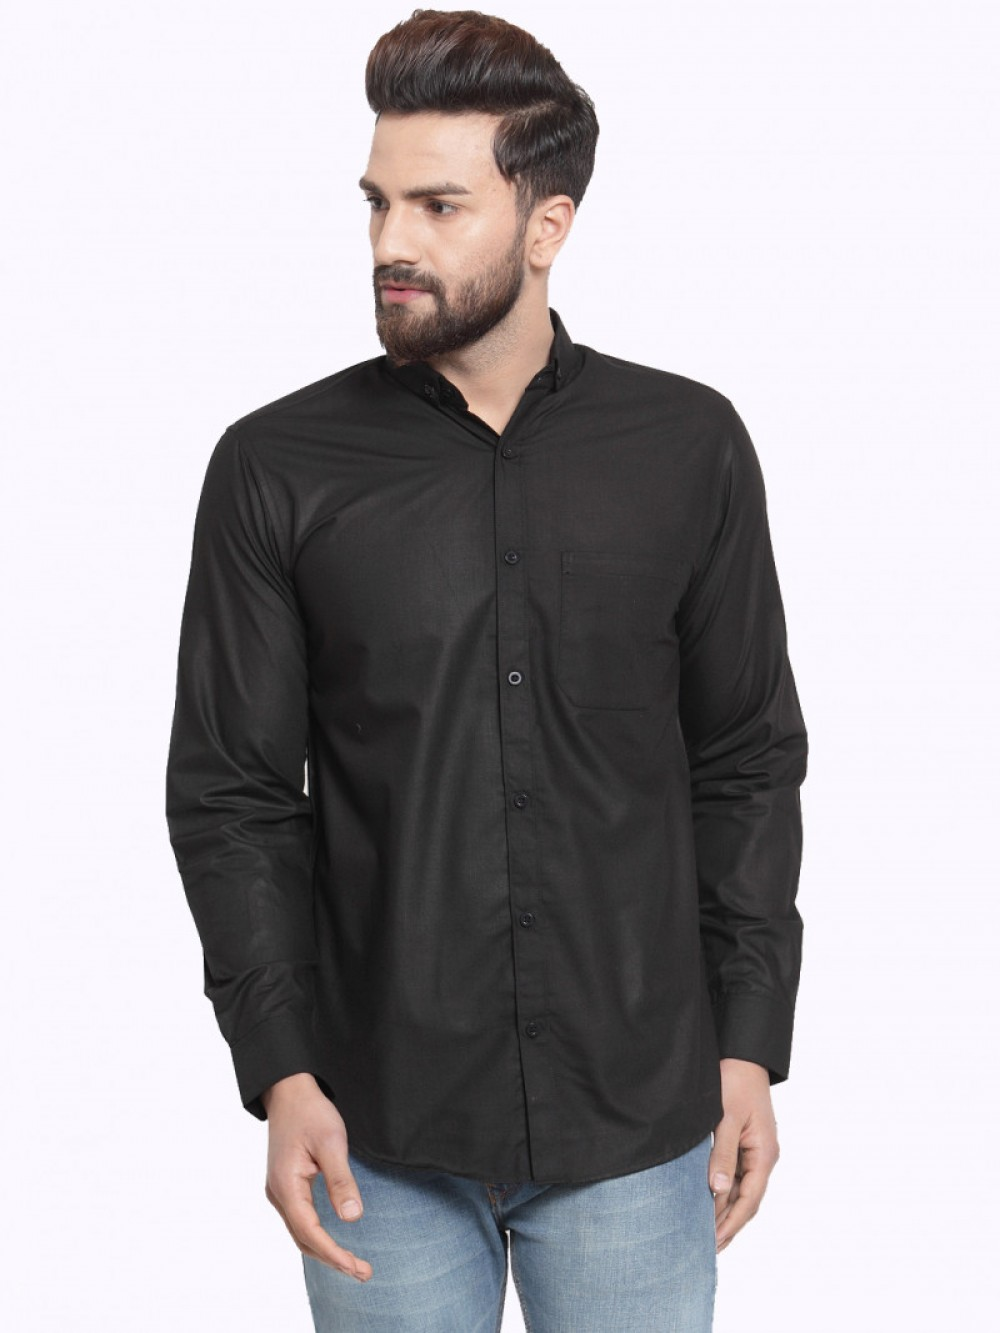 Black Plain Formal Look Shirt